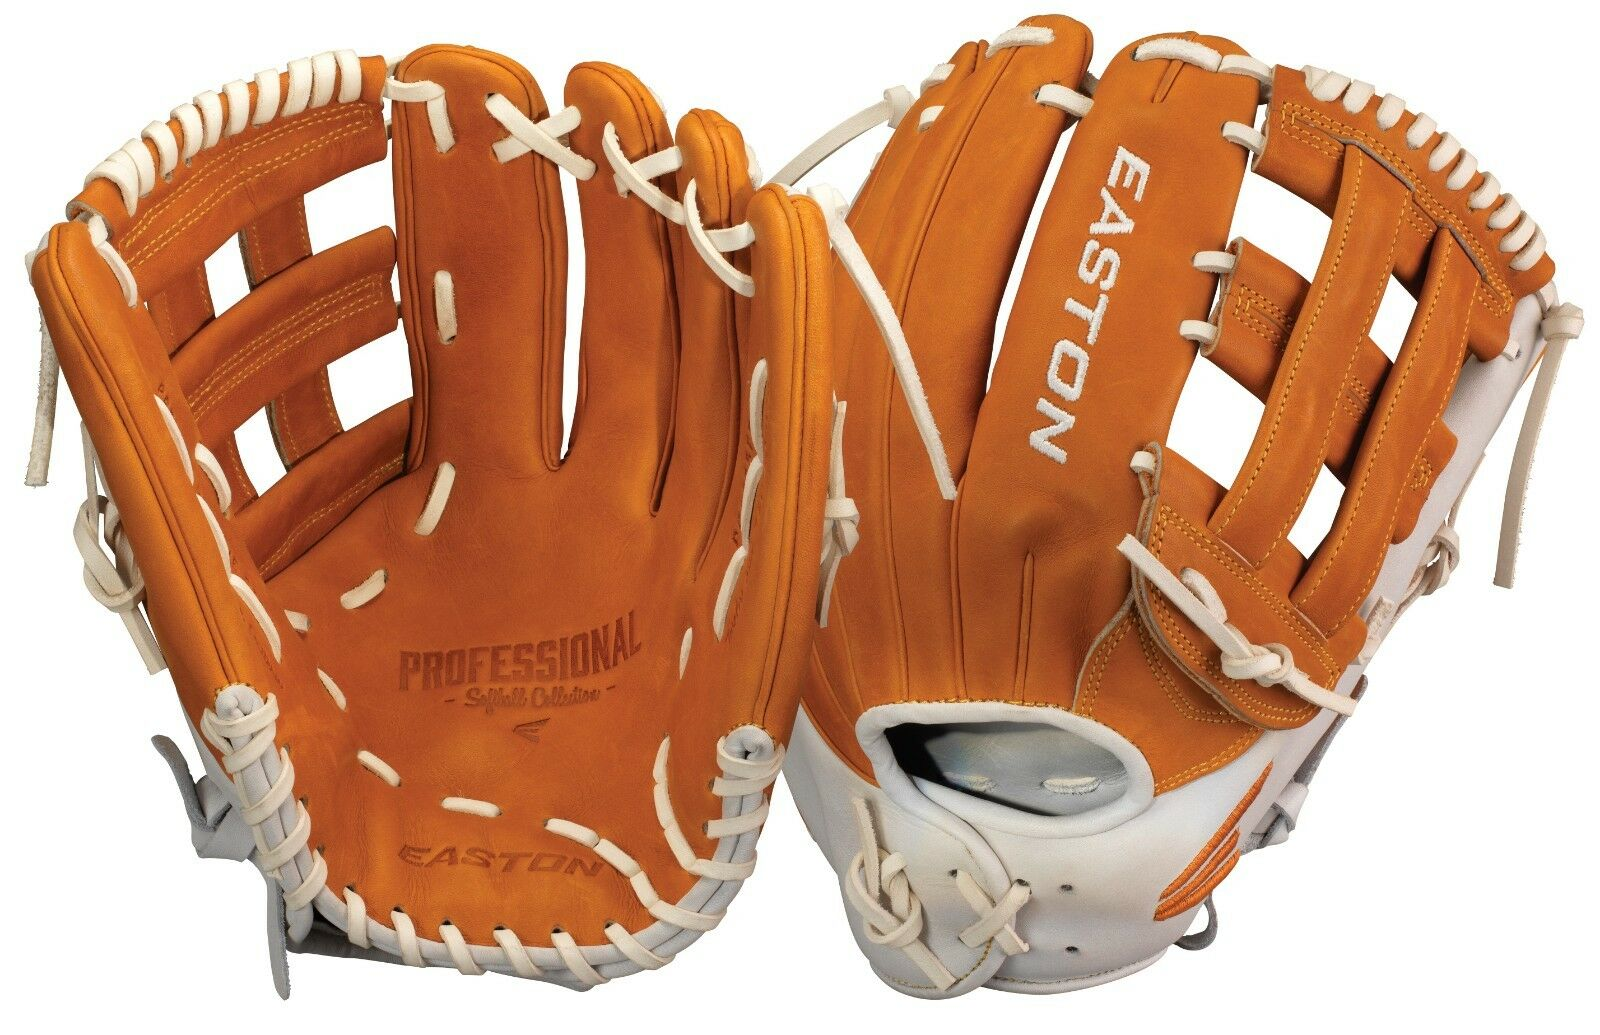 Easton Profesional Fastpitch Colección 12.75  PC1275FP guante de Softball